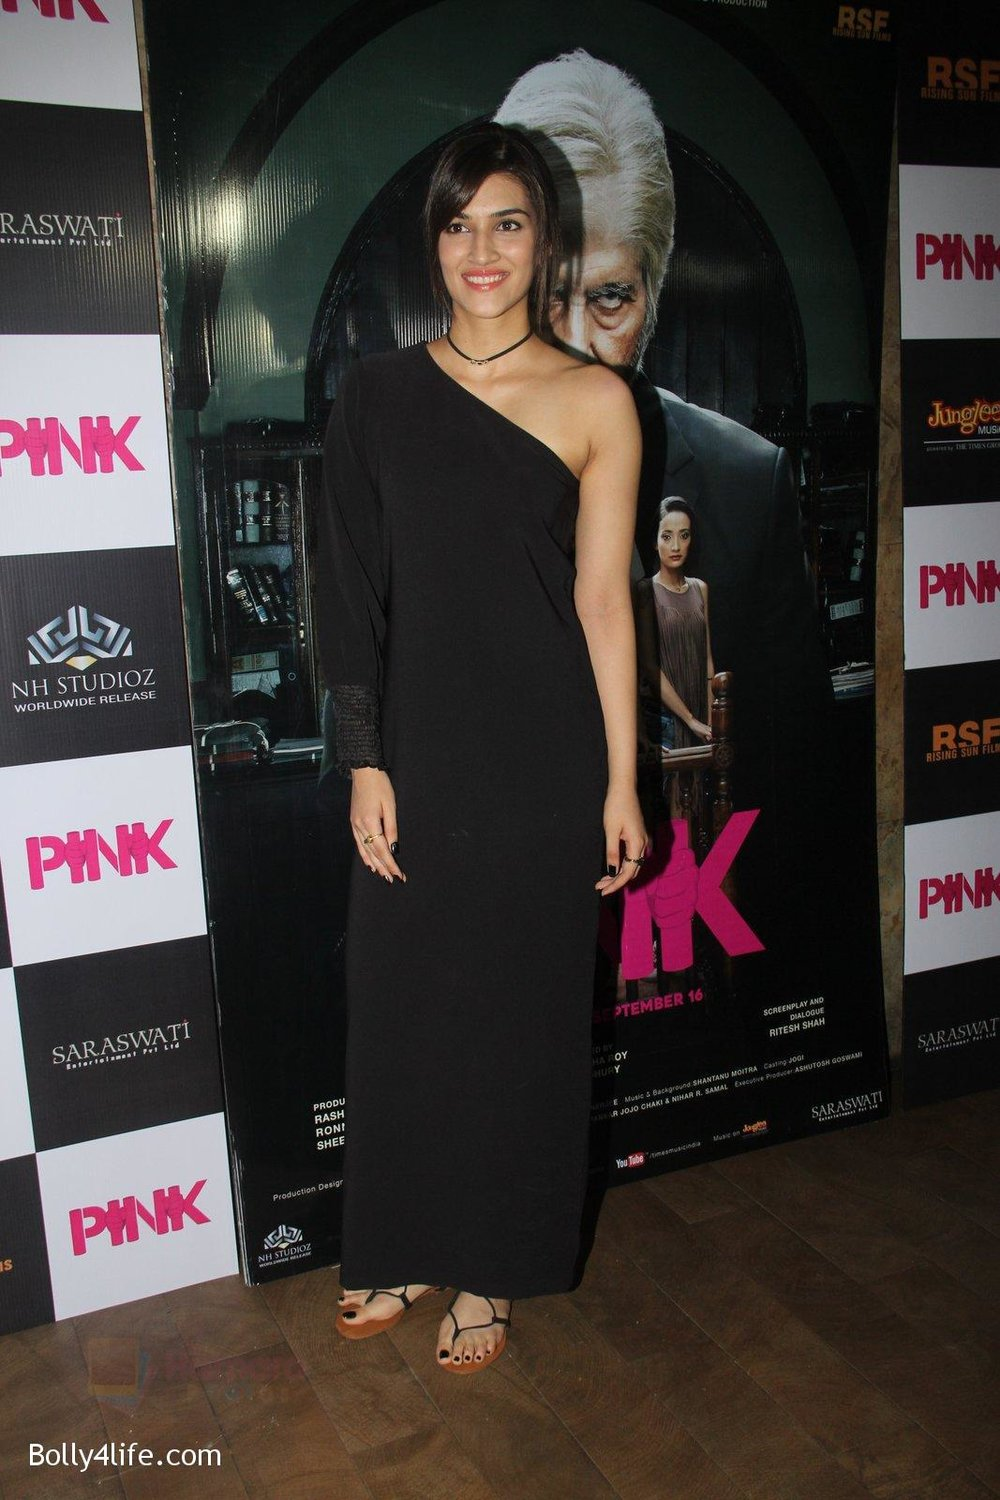 Kriti-Sanon-at-Pink-Screening-in-Lightbox-on-12th-Sept-2016-101.jpg